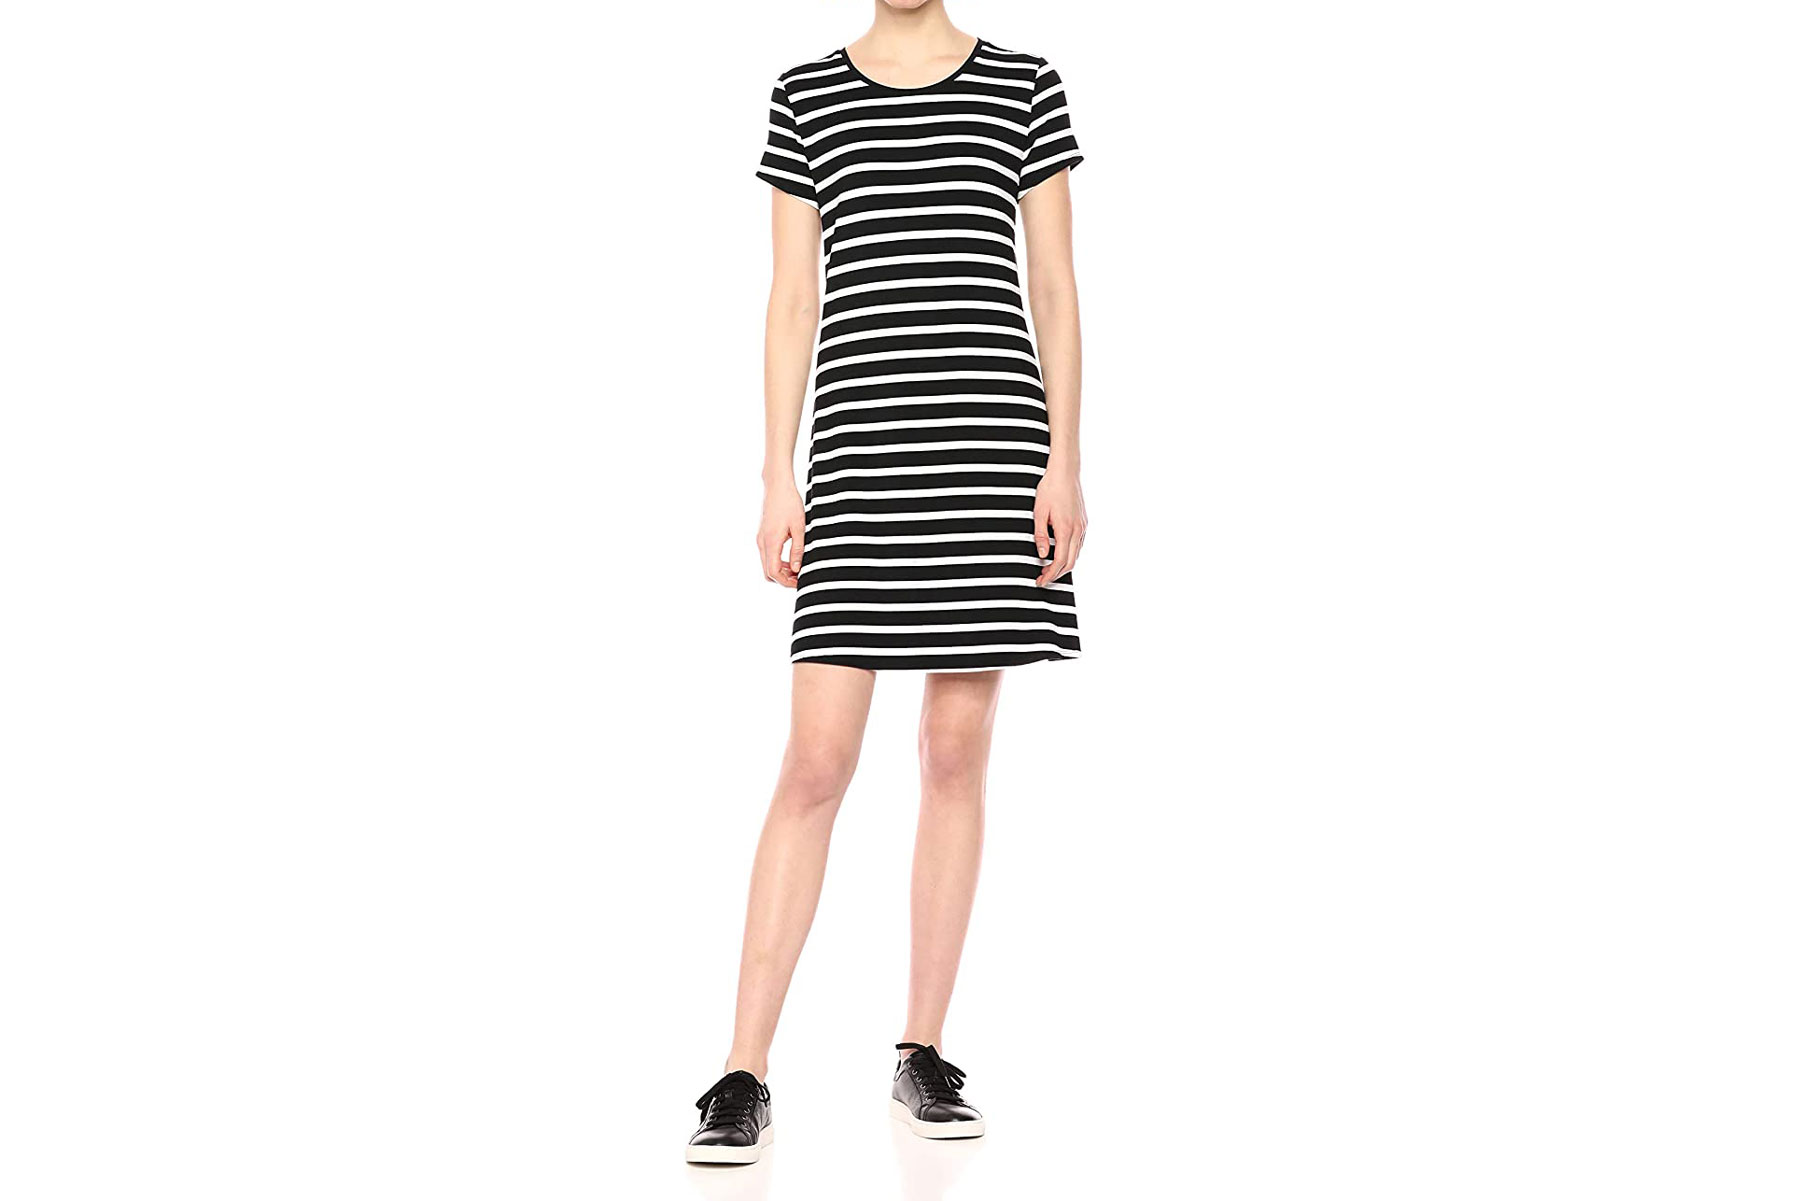 Black and white striped tee dress